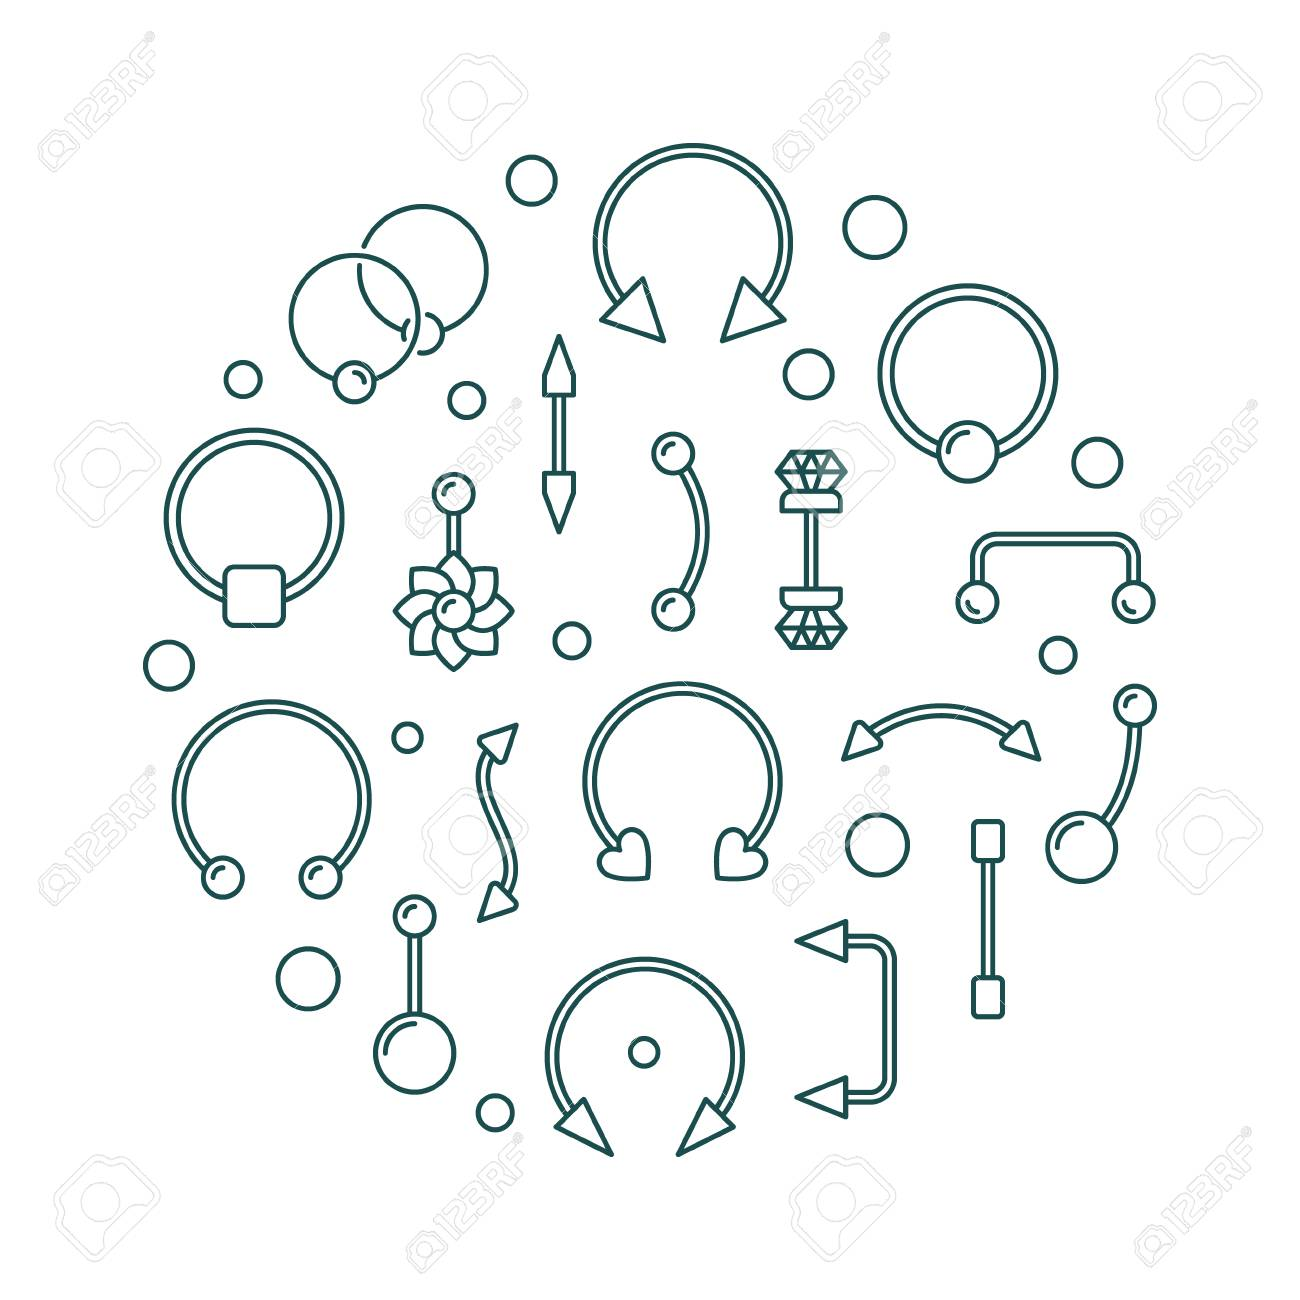 Body Piercing Vector Illustration Made Of Body Jewelry Icons Royalty Free Cliparts Vectors And Stock Illustration Image 100913740